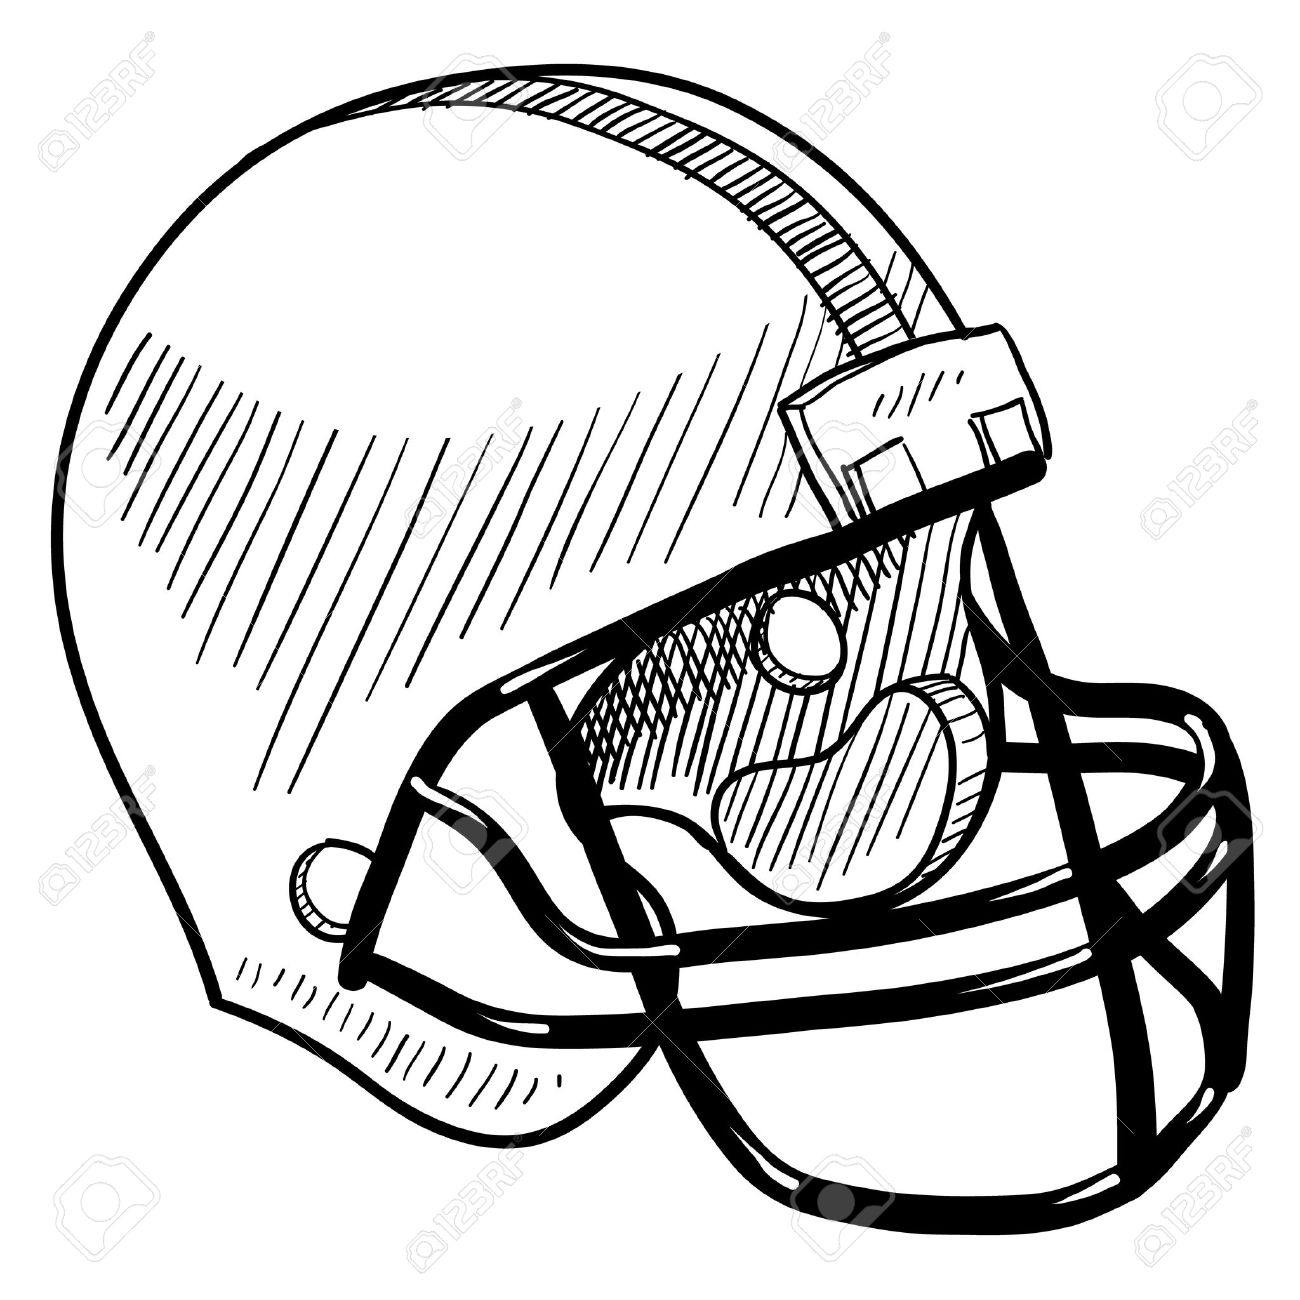 Vintage Football Helmet Clipart